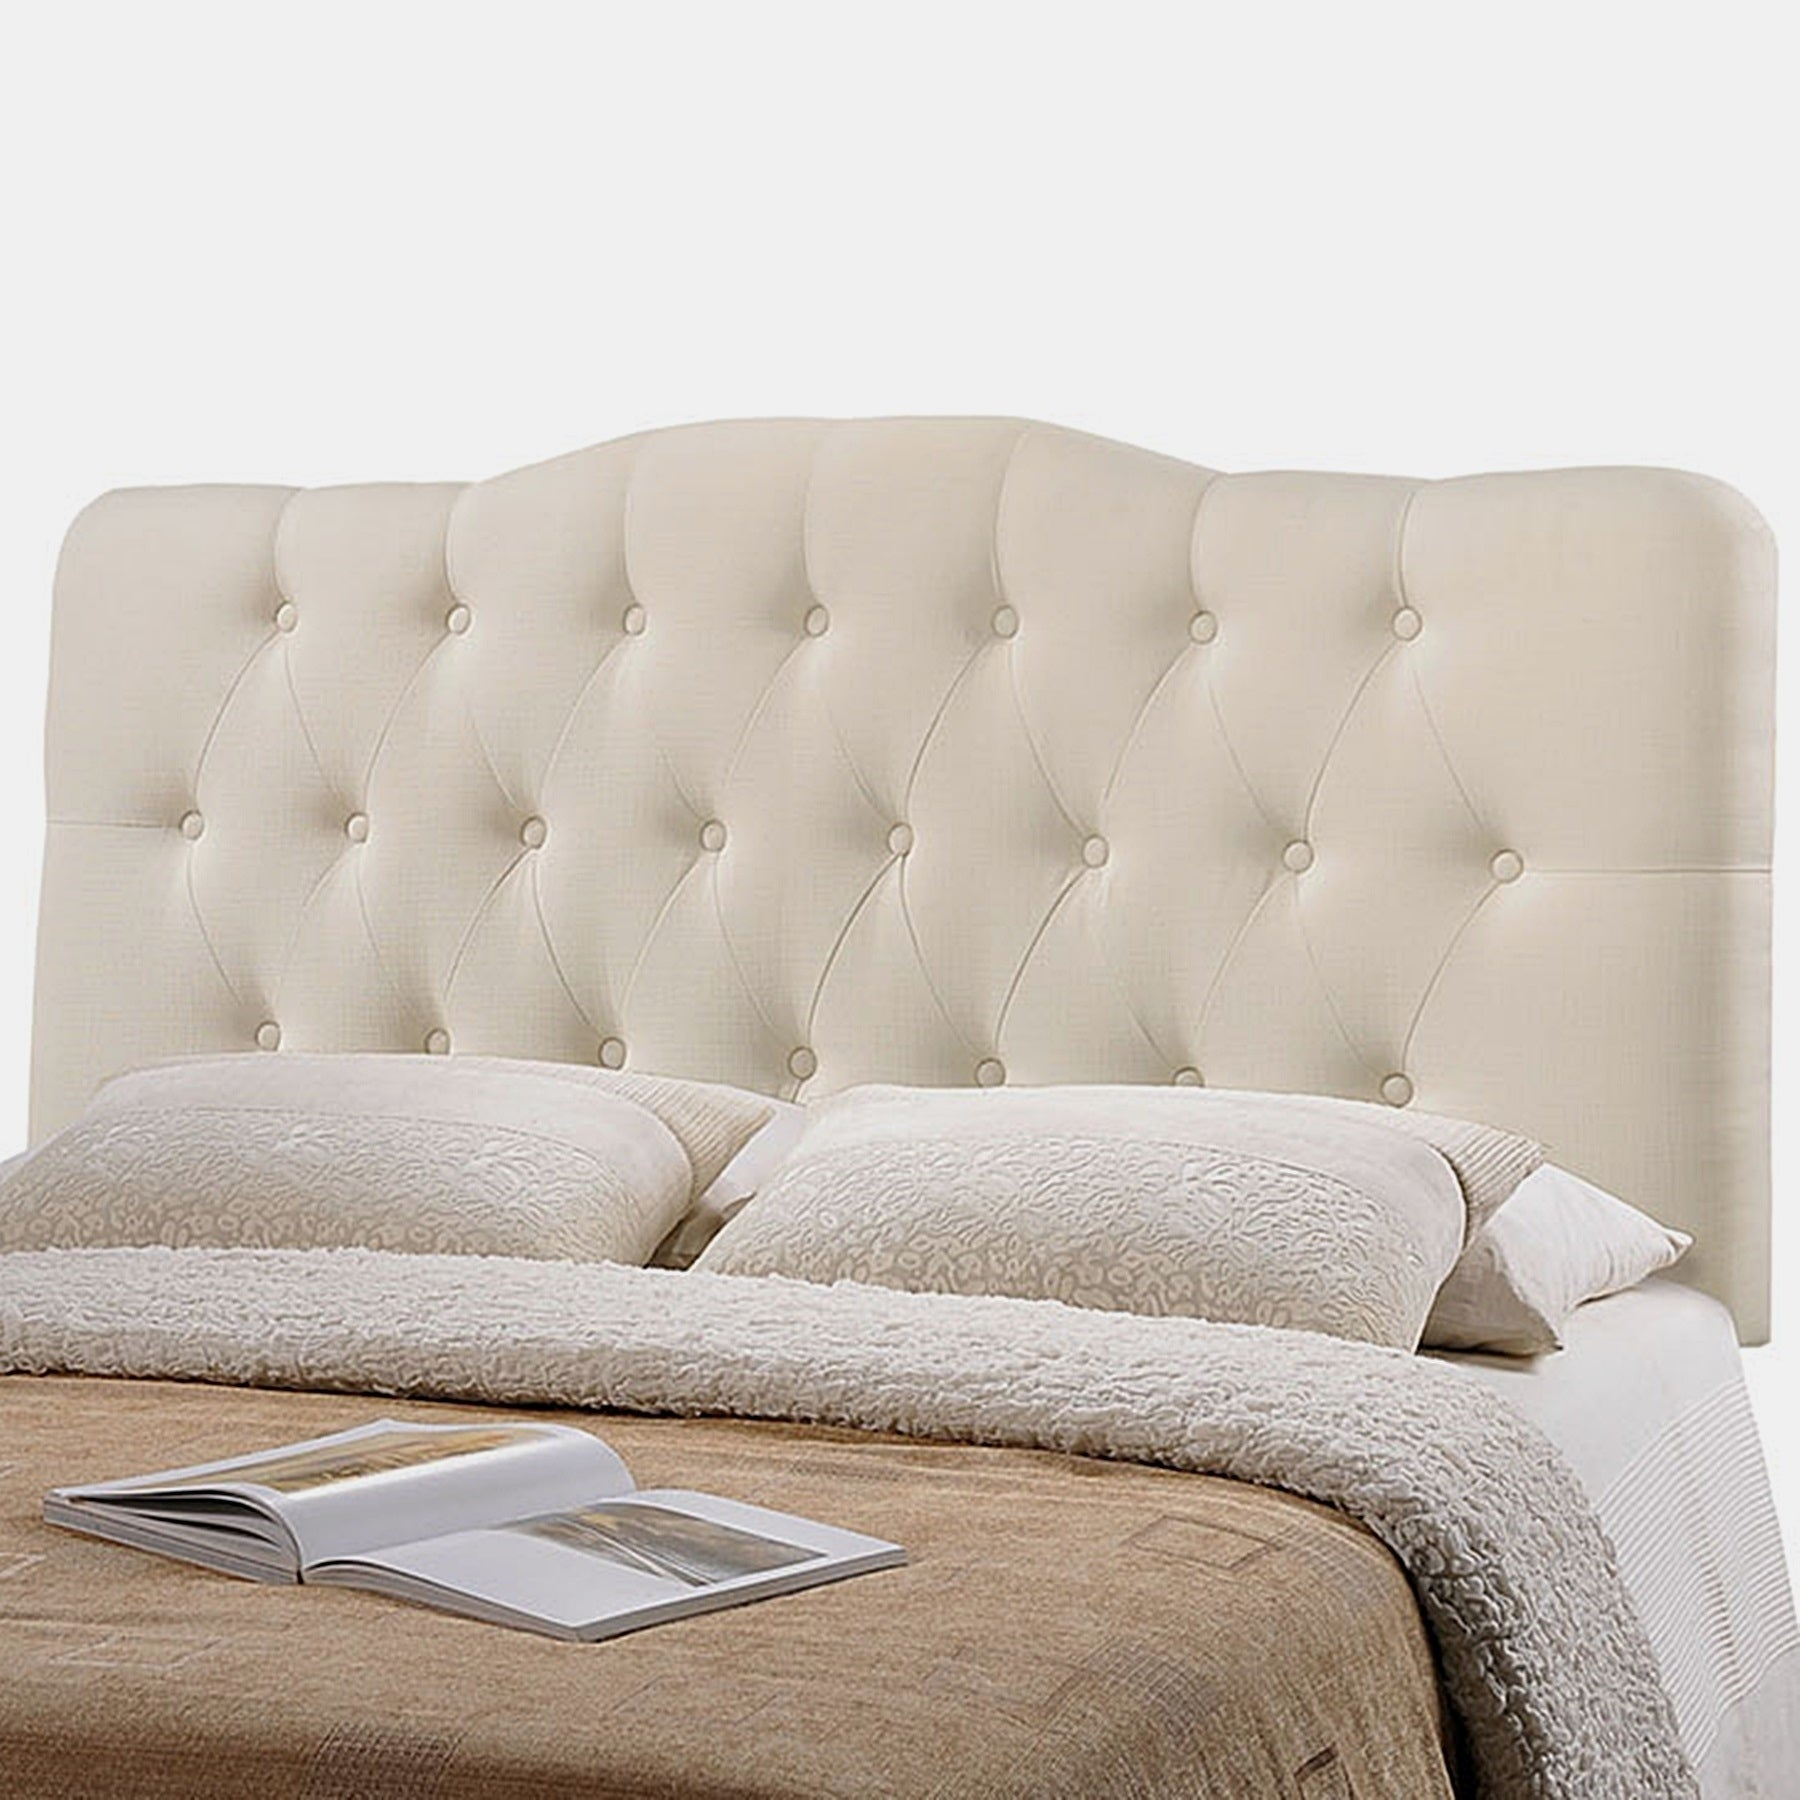 Kenmore Ivory Fabric Upholstered Tufted King Size Headboard On Sale Overstock 27468520